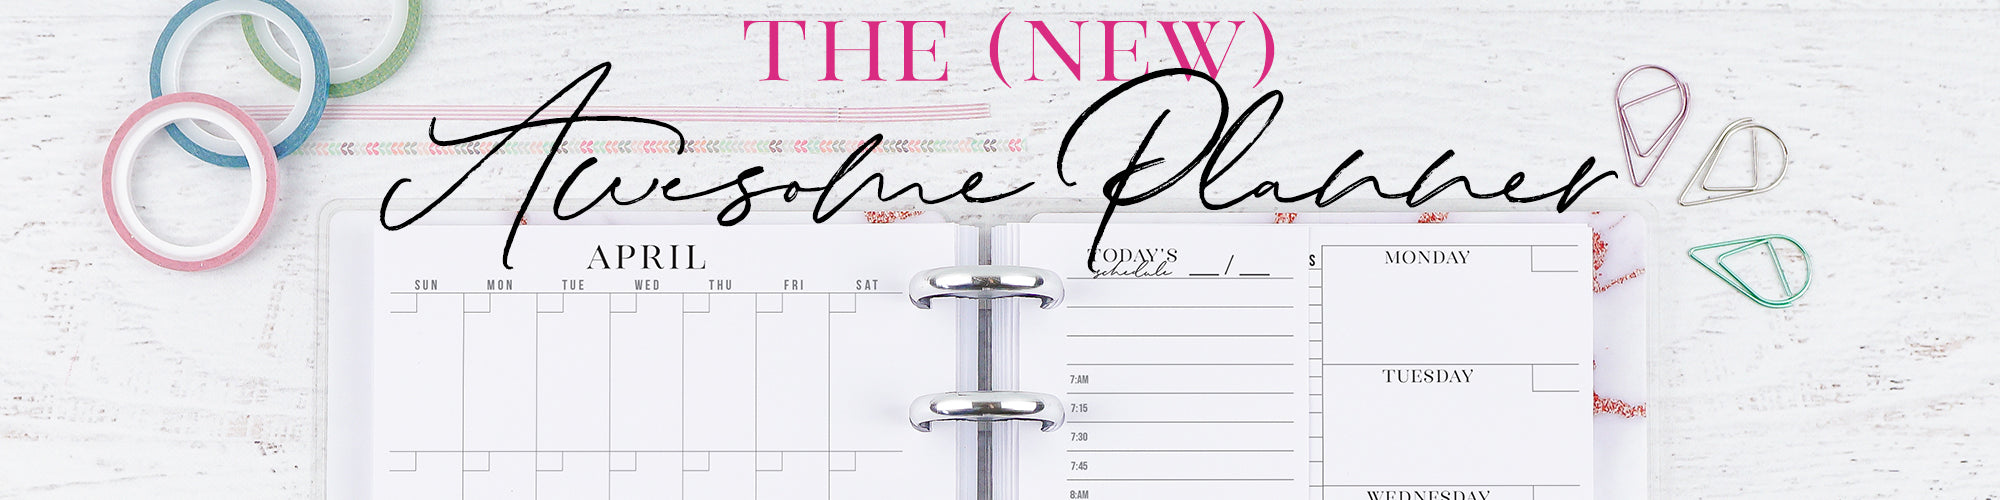 Awesome Planner Monthly Weekly Daily by Jane's Agenda